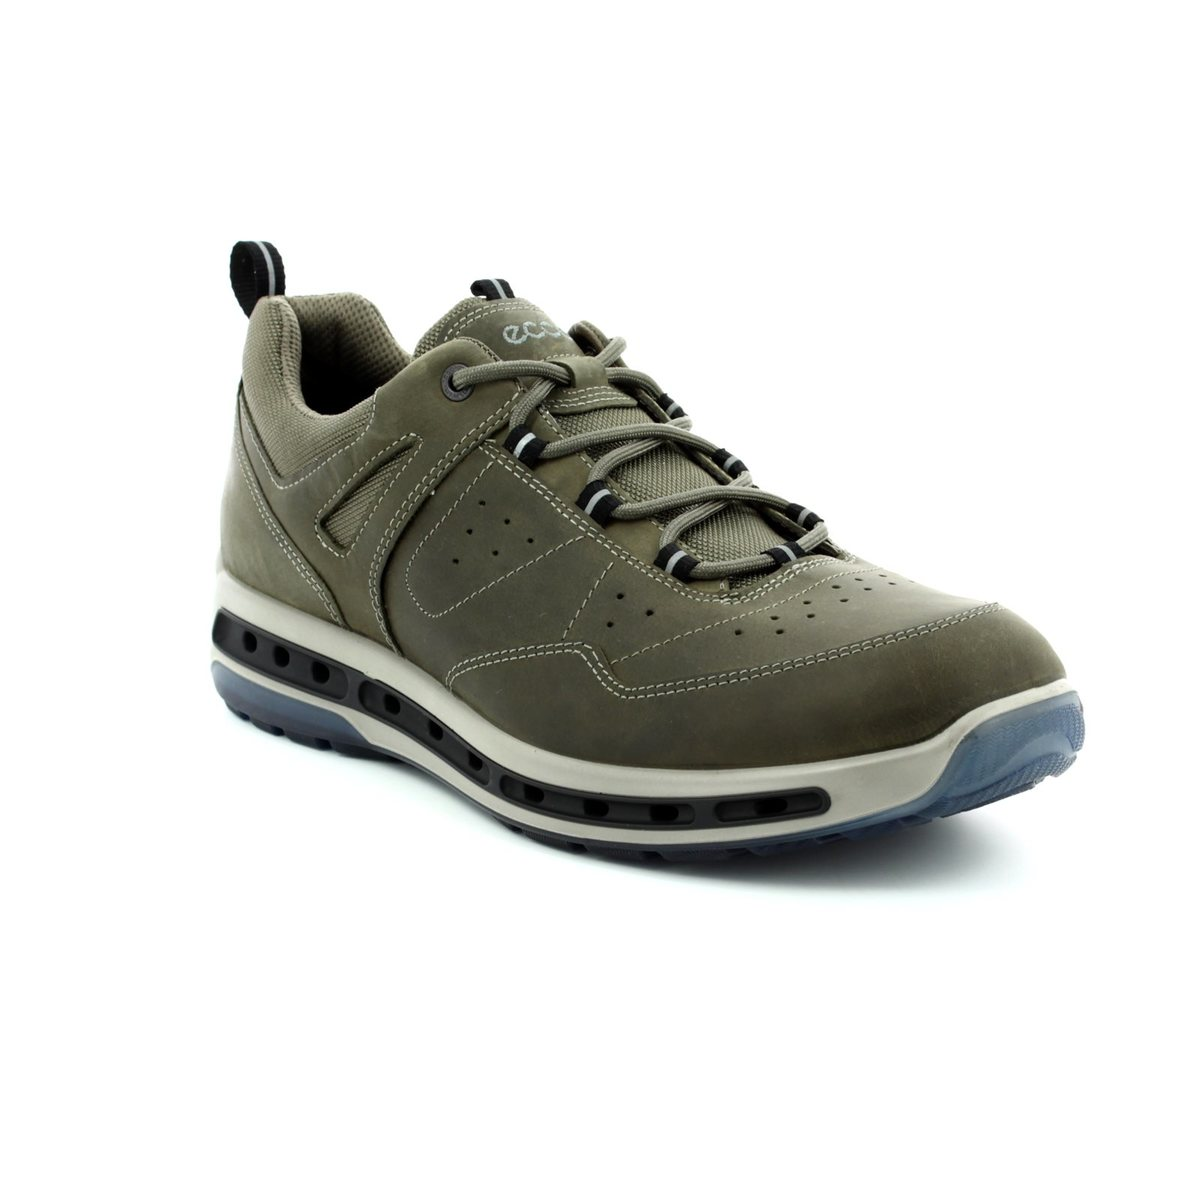 eab2c3339601 ECCO Casual Shoes - Olive - 833204 02543 COOL WALK Gore-Tex